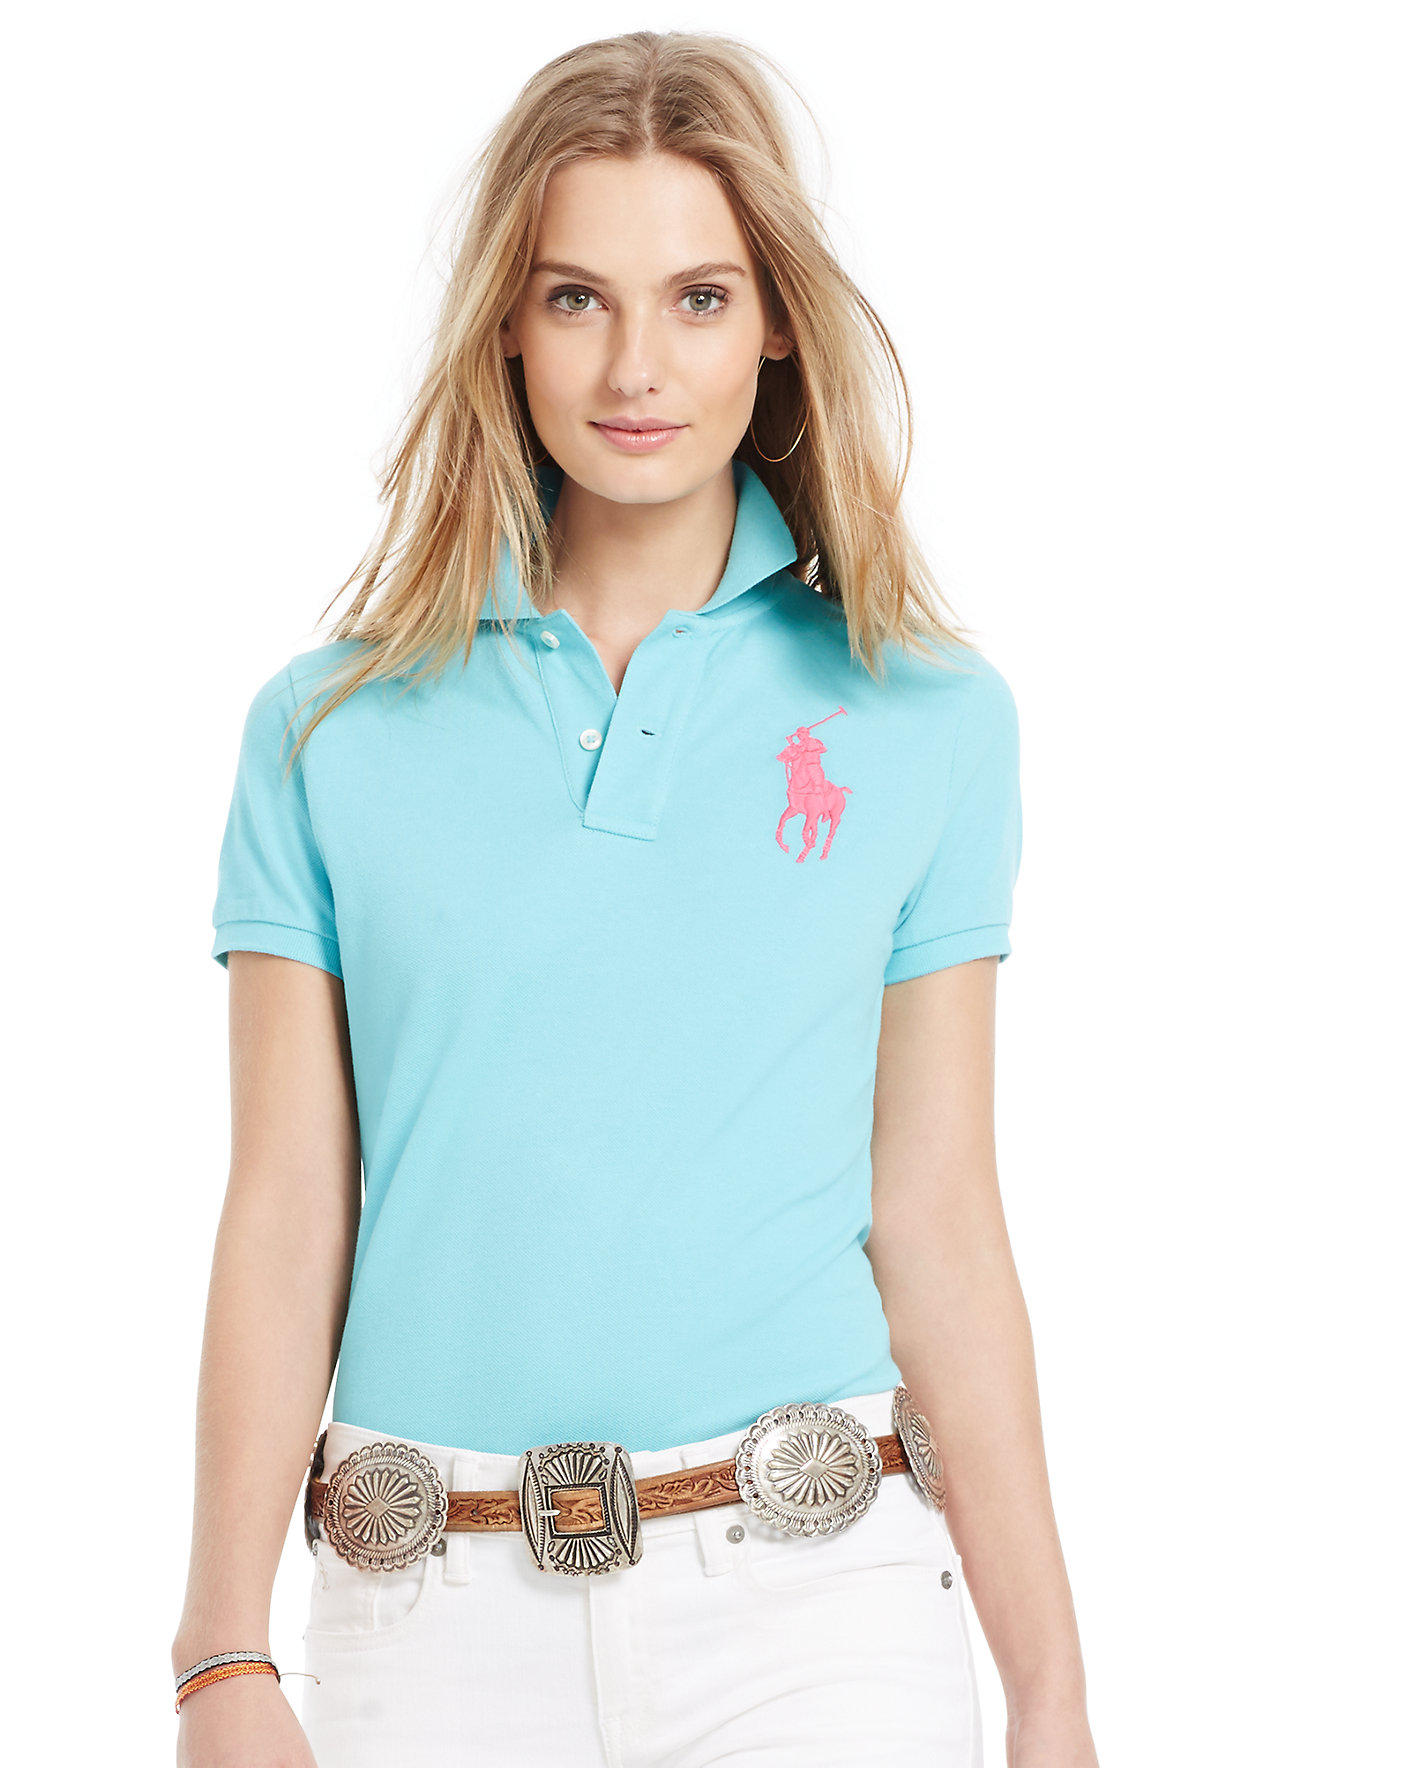 Up to $225 Off Select Women's Clothing Sale @ Ralph Lauren